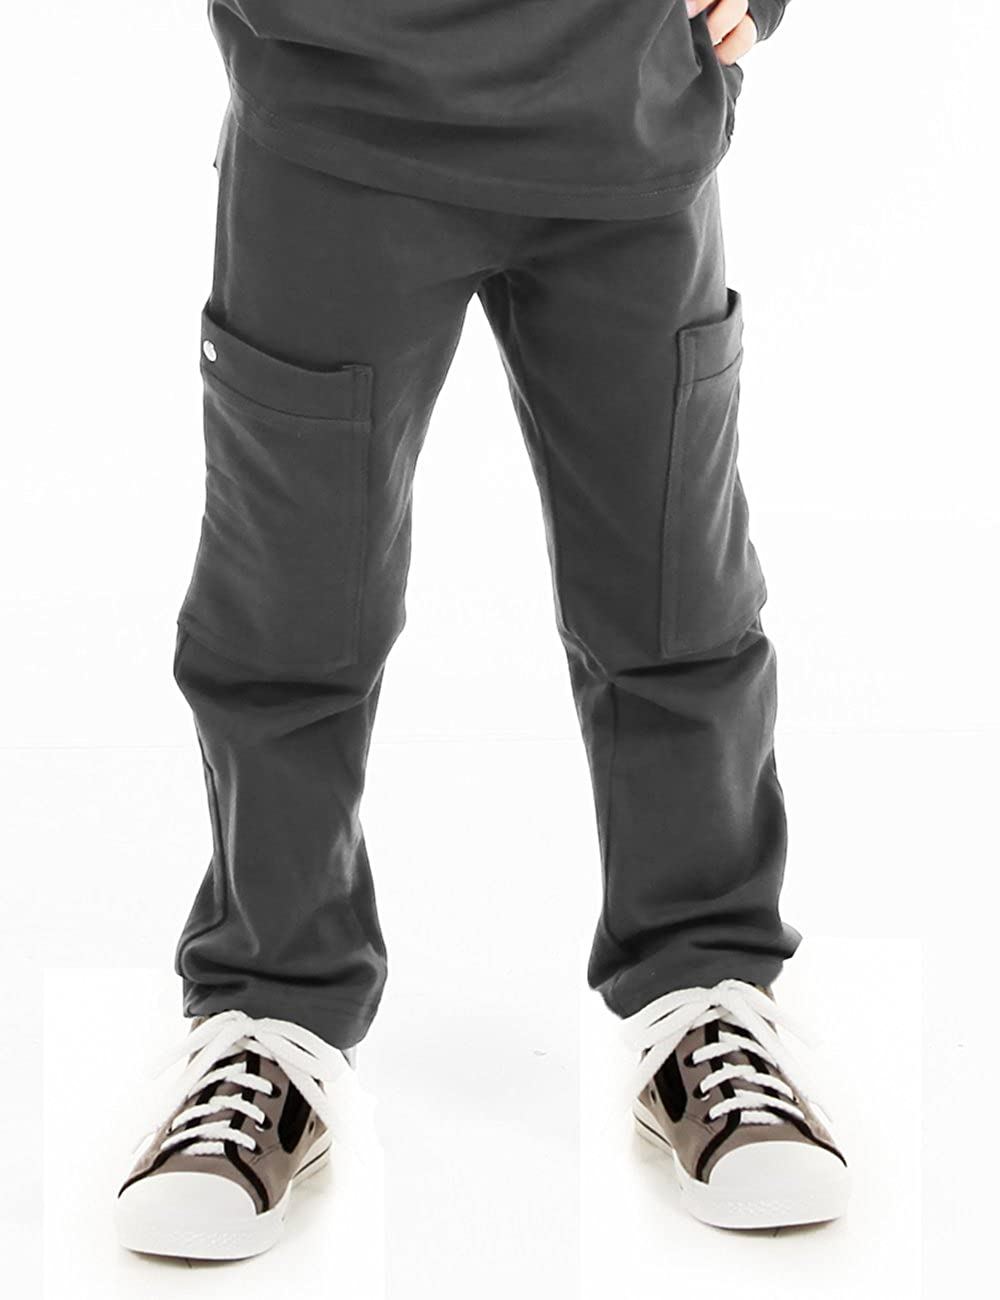 Made In USA Navy Nano Boys Knit French Terry Stretch Slim//Skinny Fit Cargo Pants